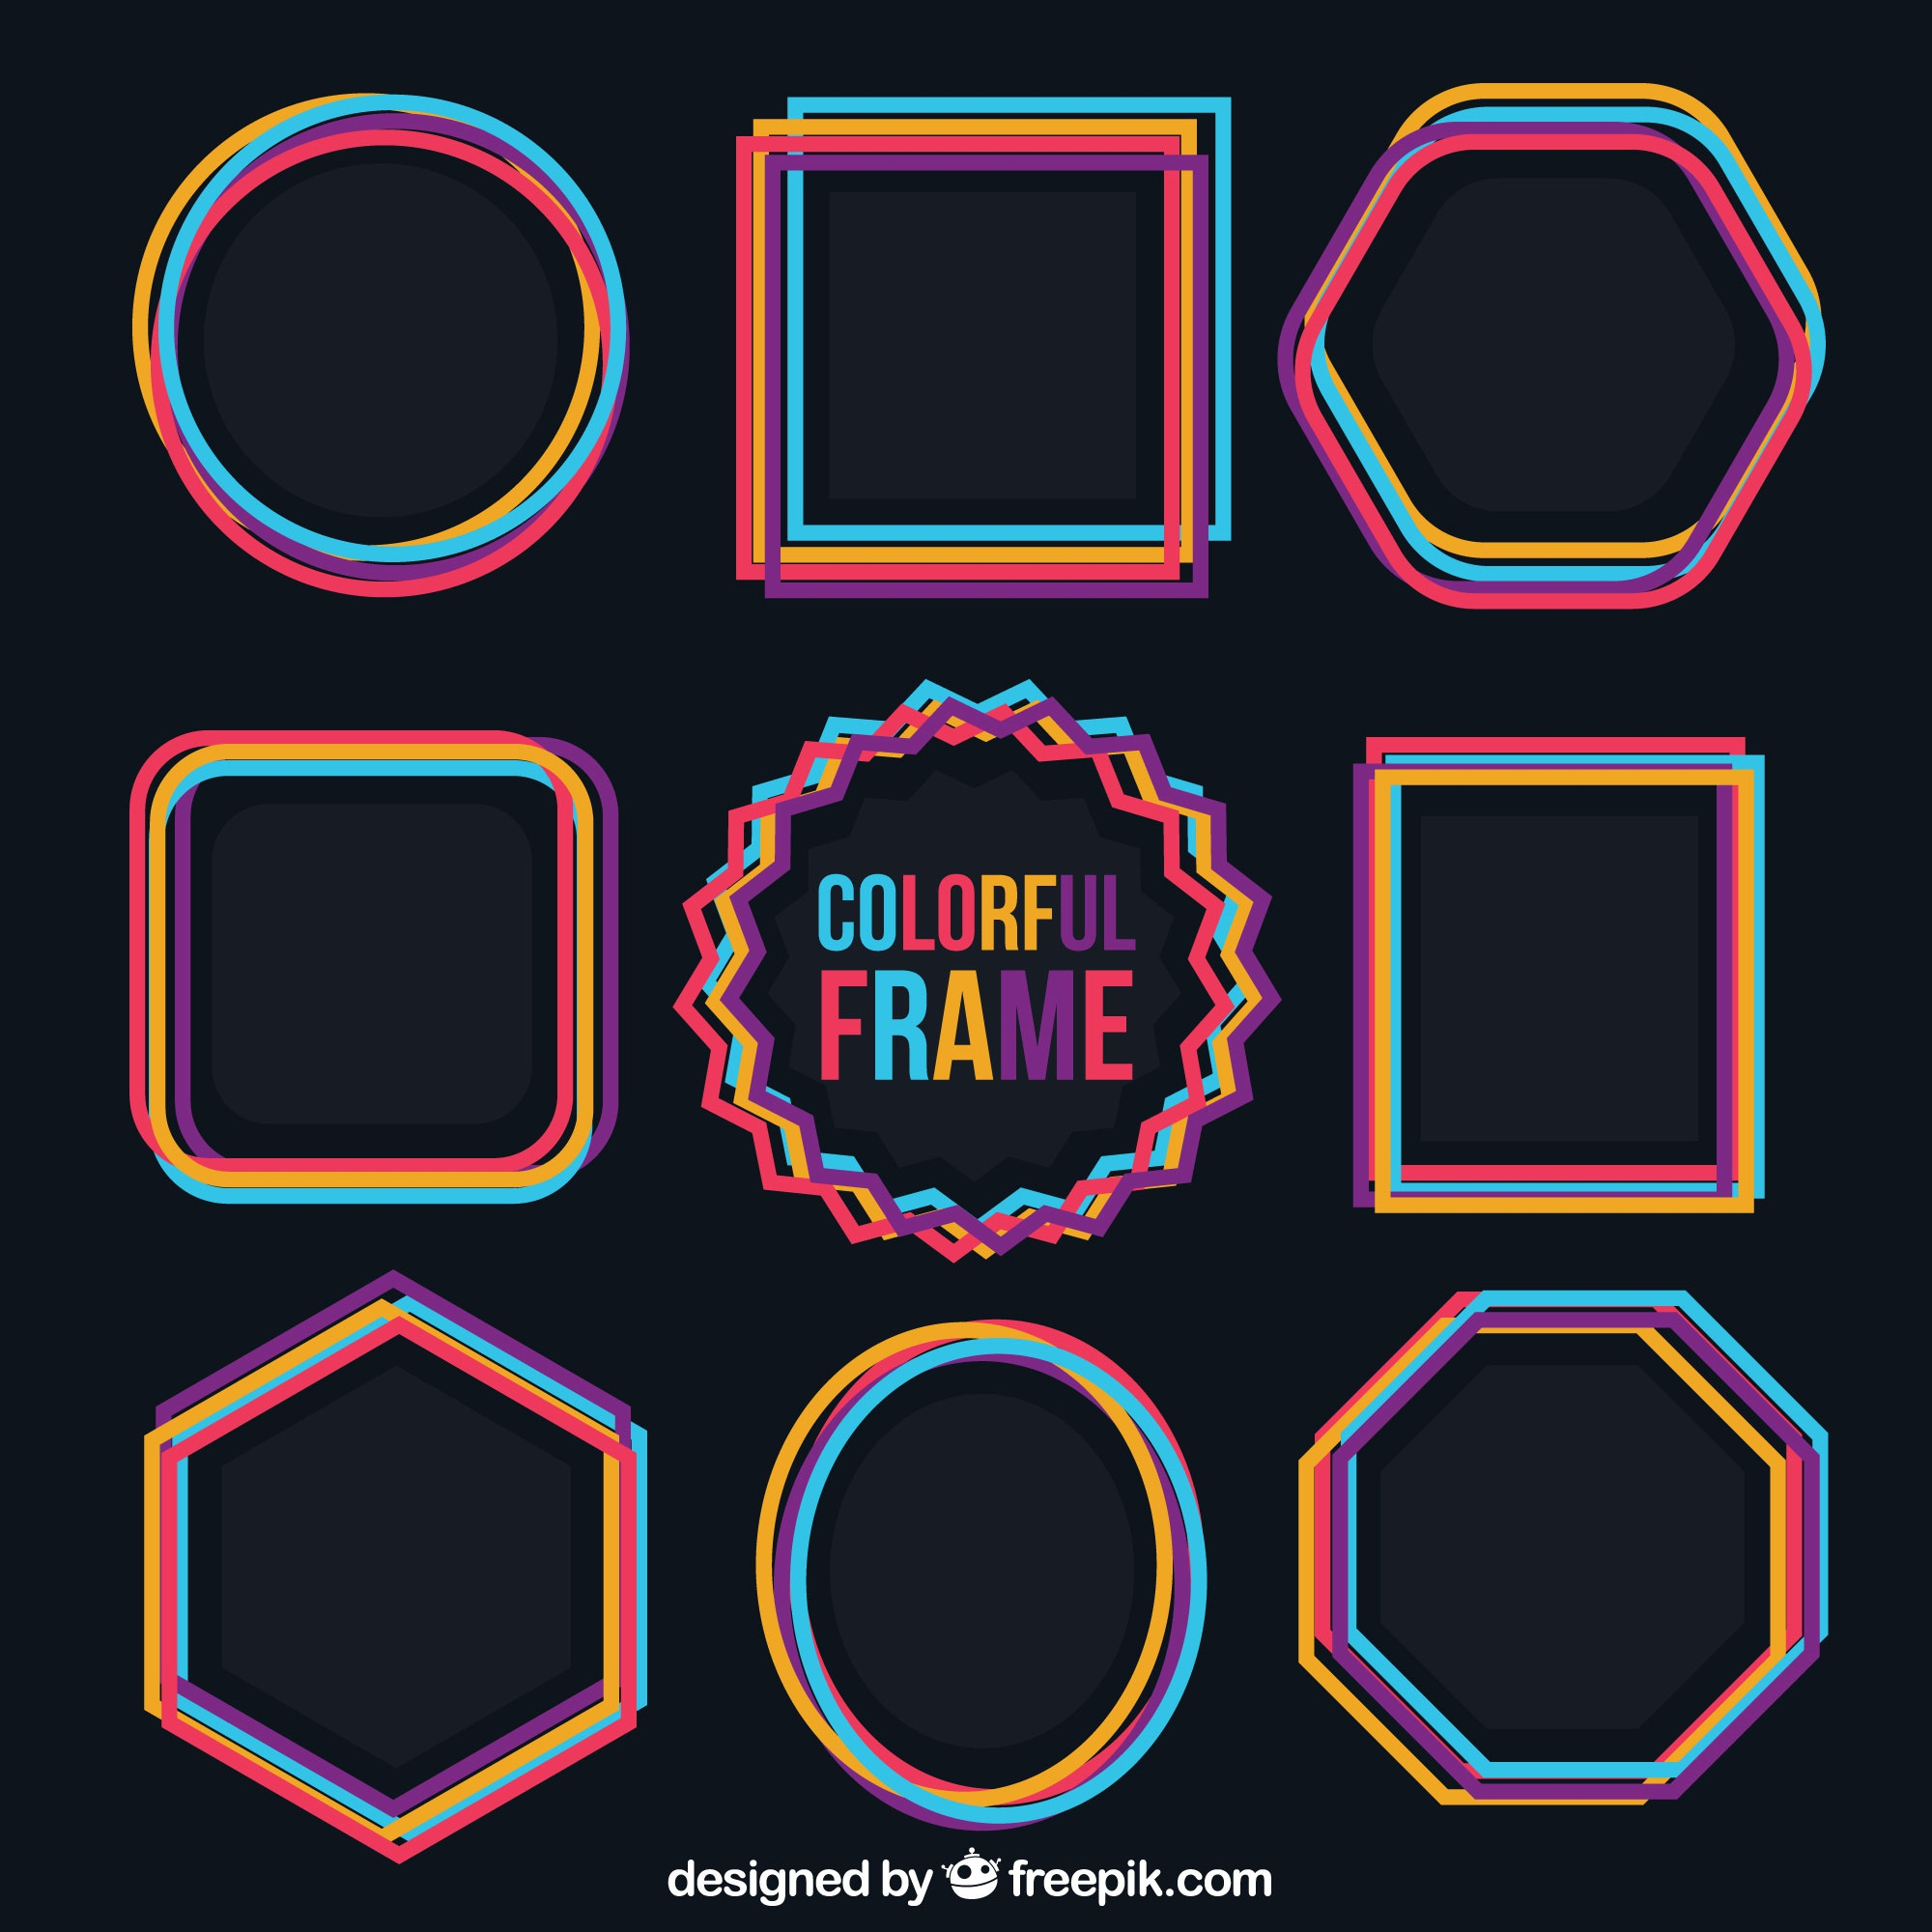 Colorful frames collection